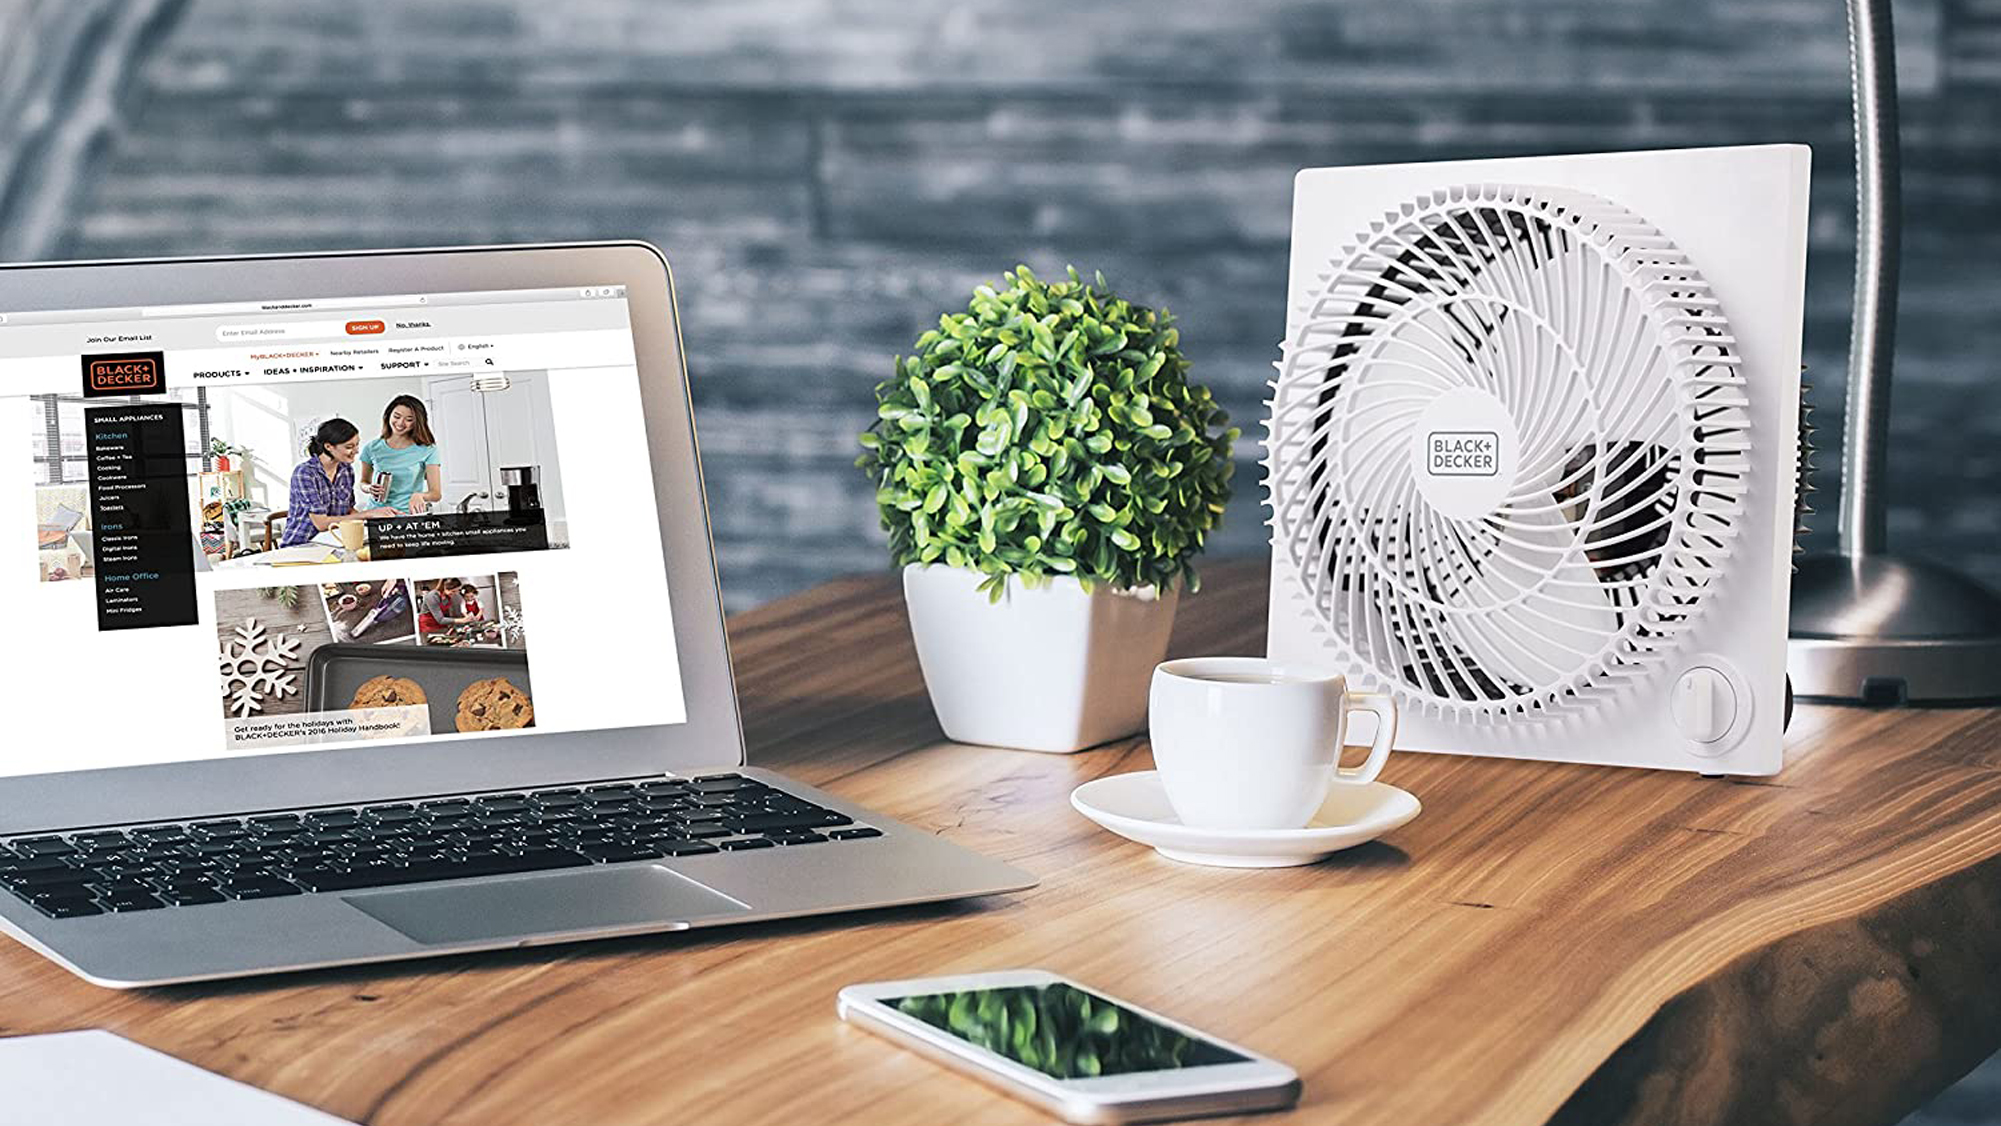 Box Fan and Air Purifier